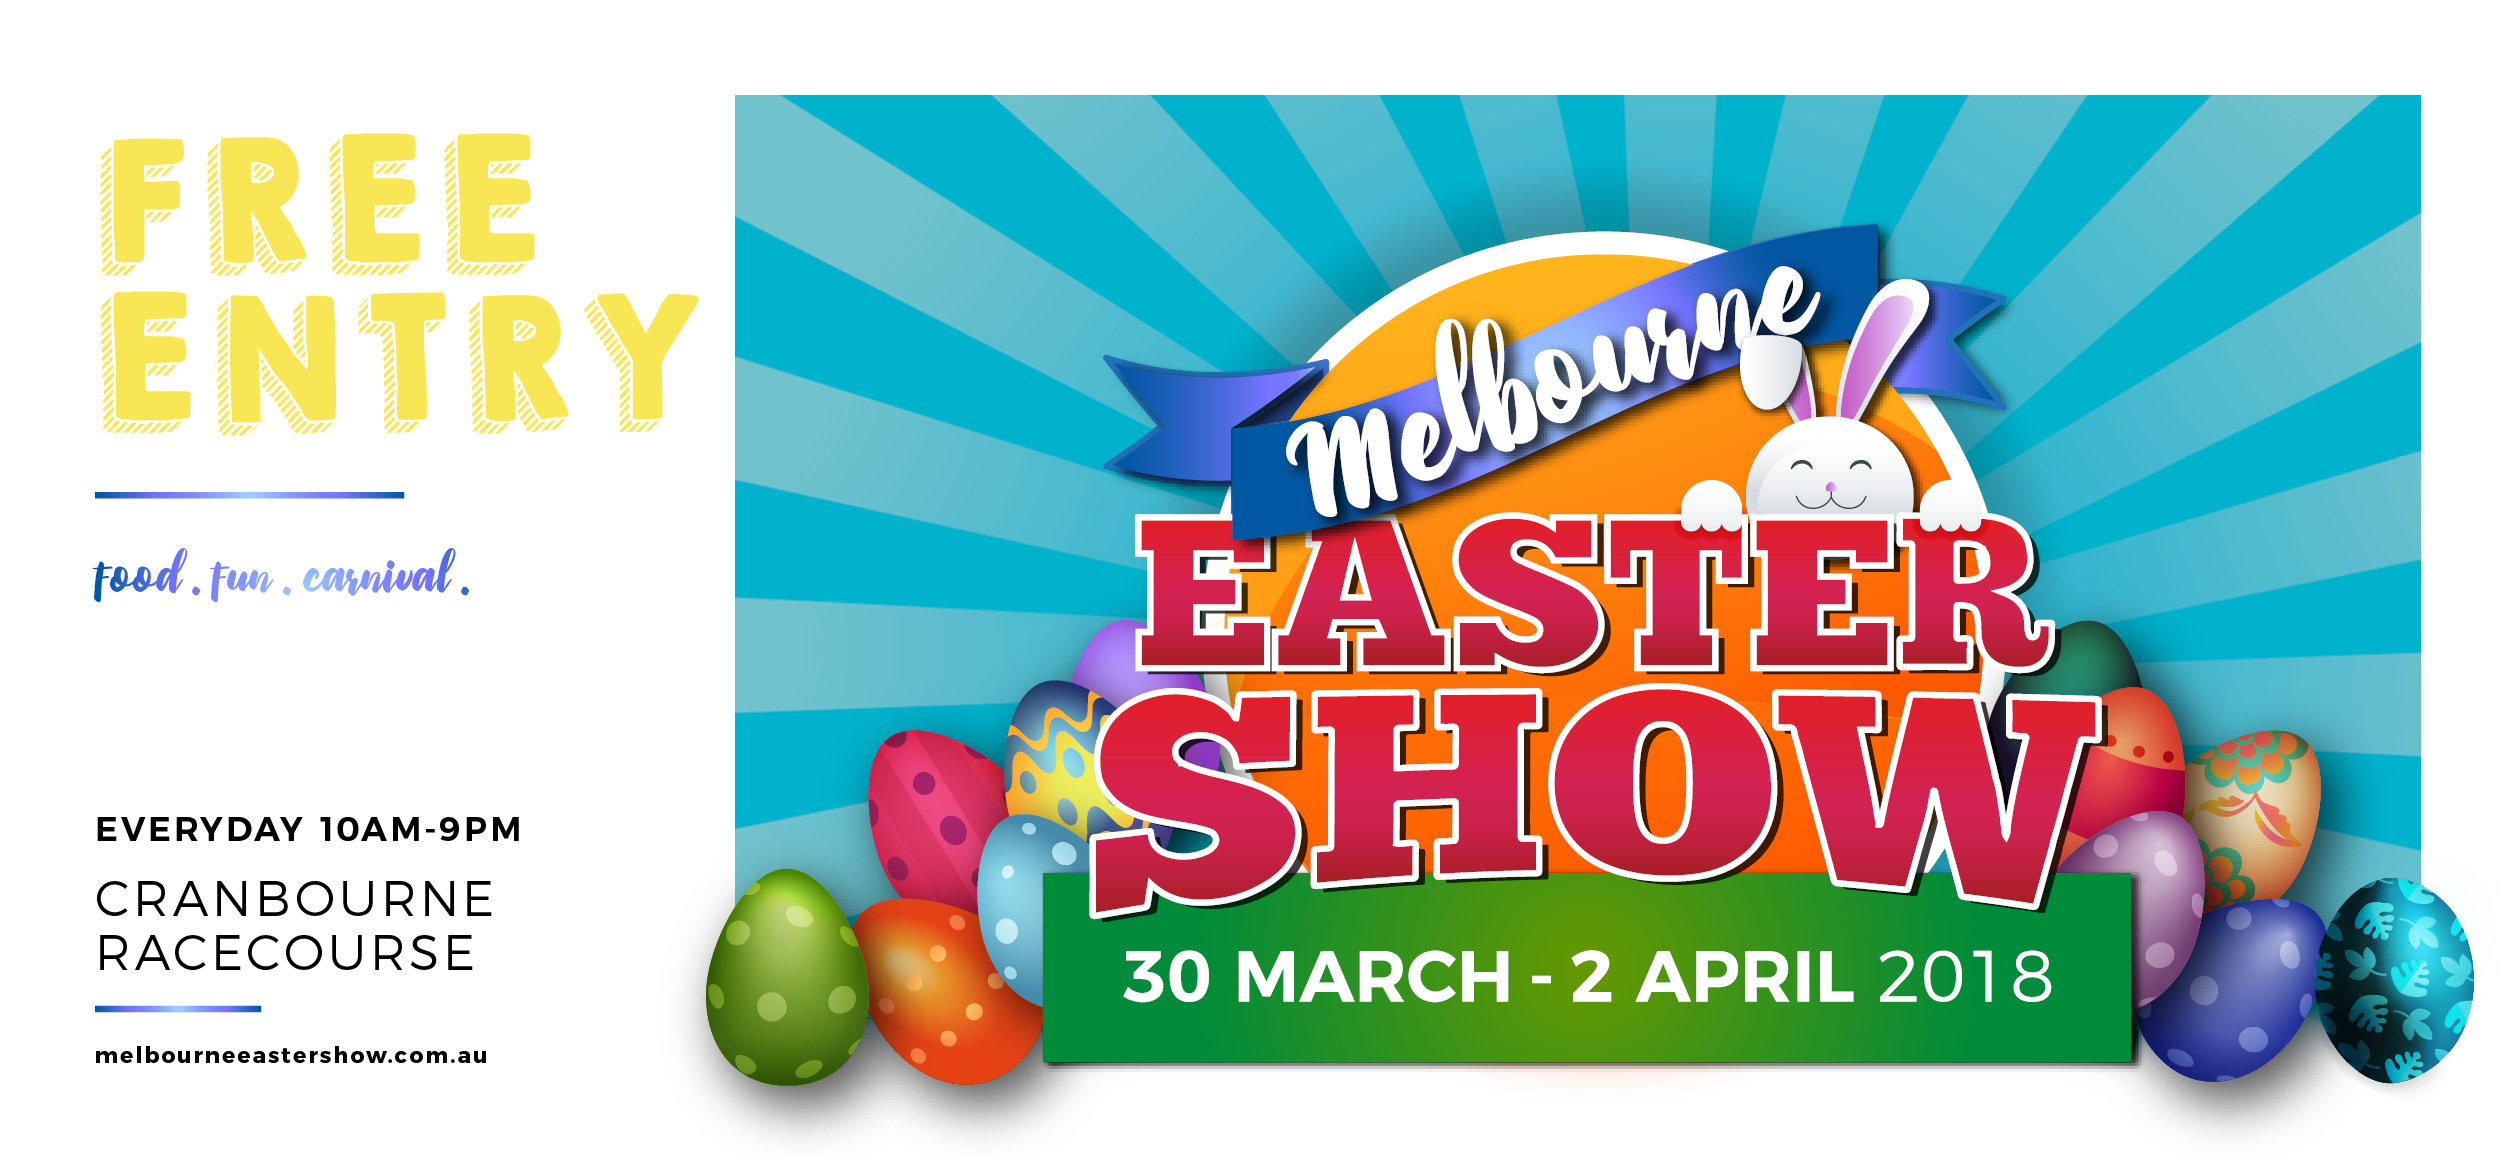 Date of easter in Melbourne